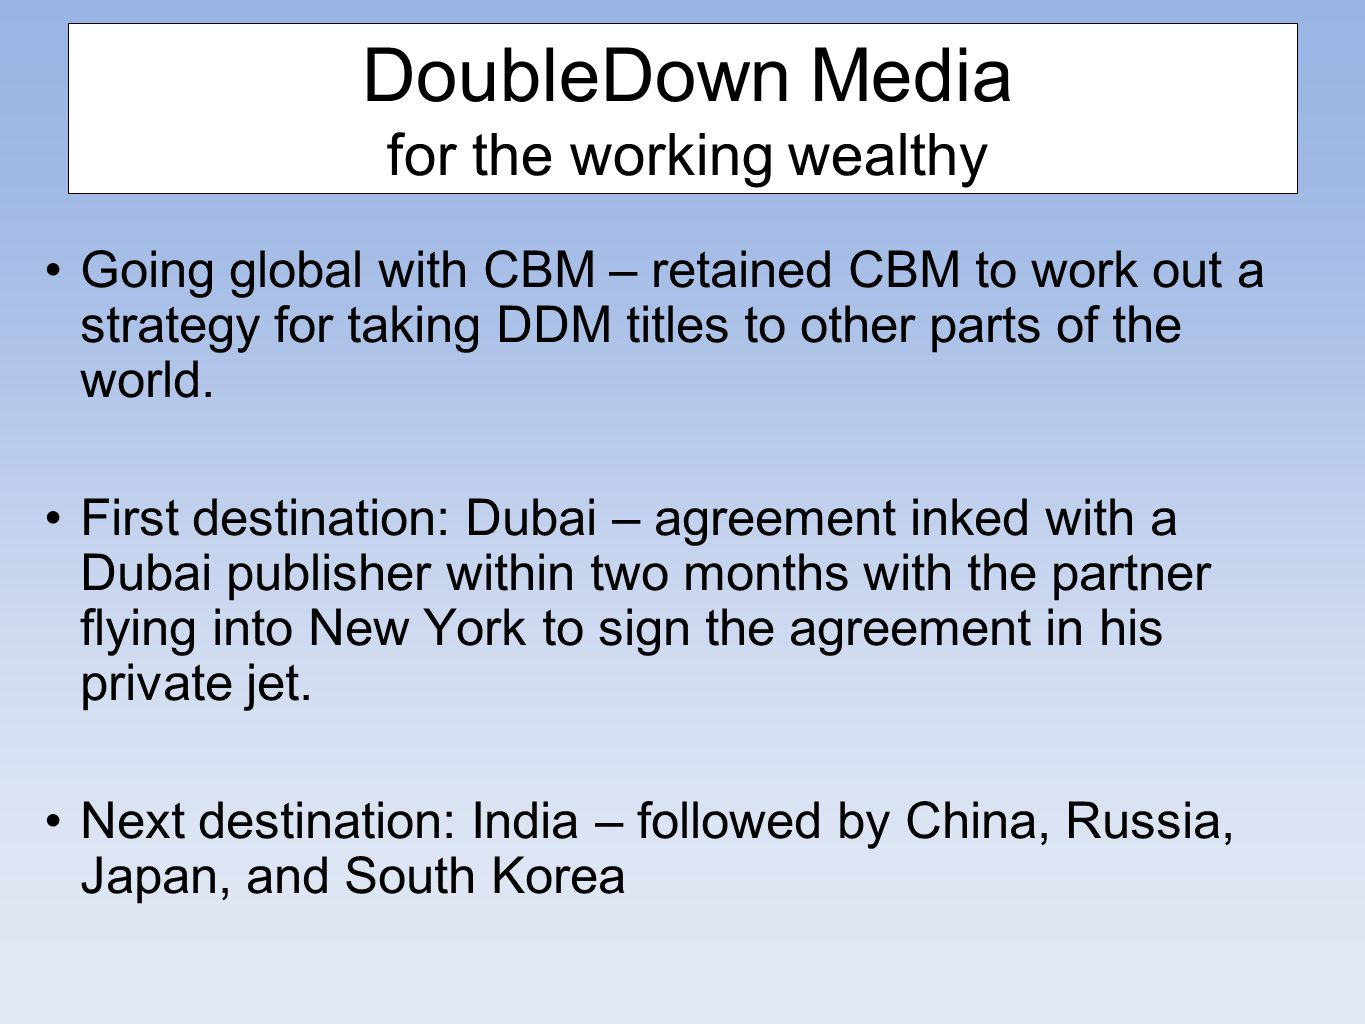 DoubleDown Media for the working wealthy Going global with CBM – retained CBM to work out a strategy for taking DDM titles to other parts of the world.